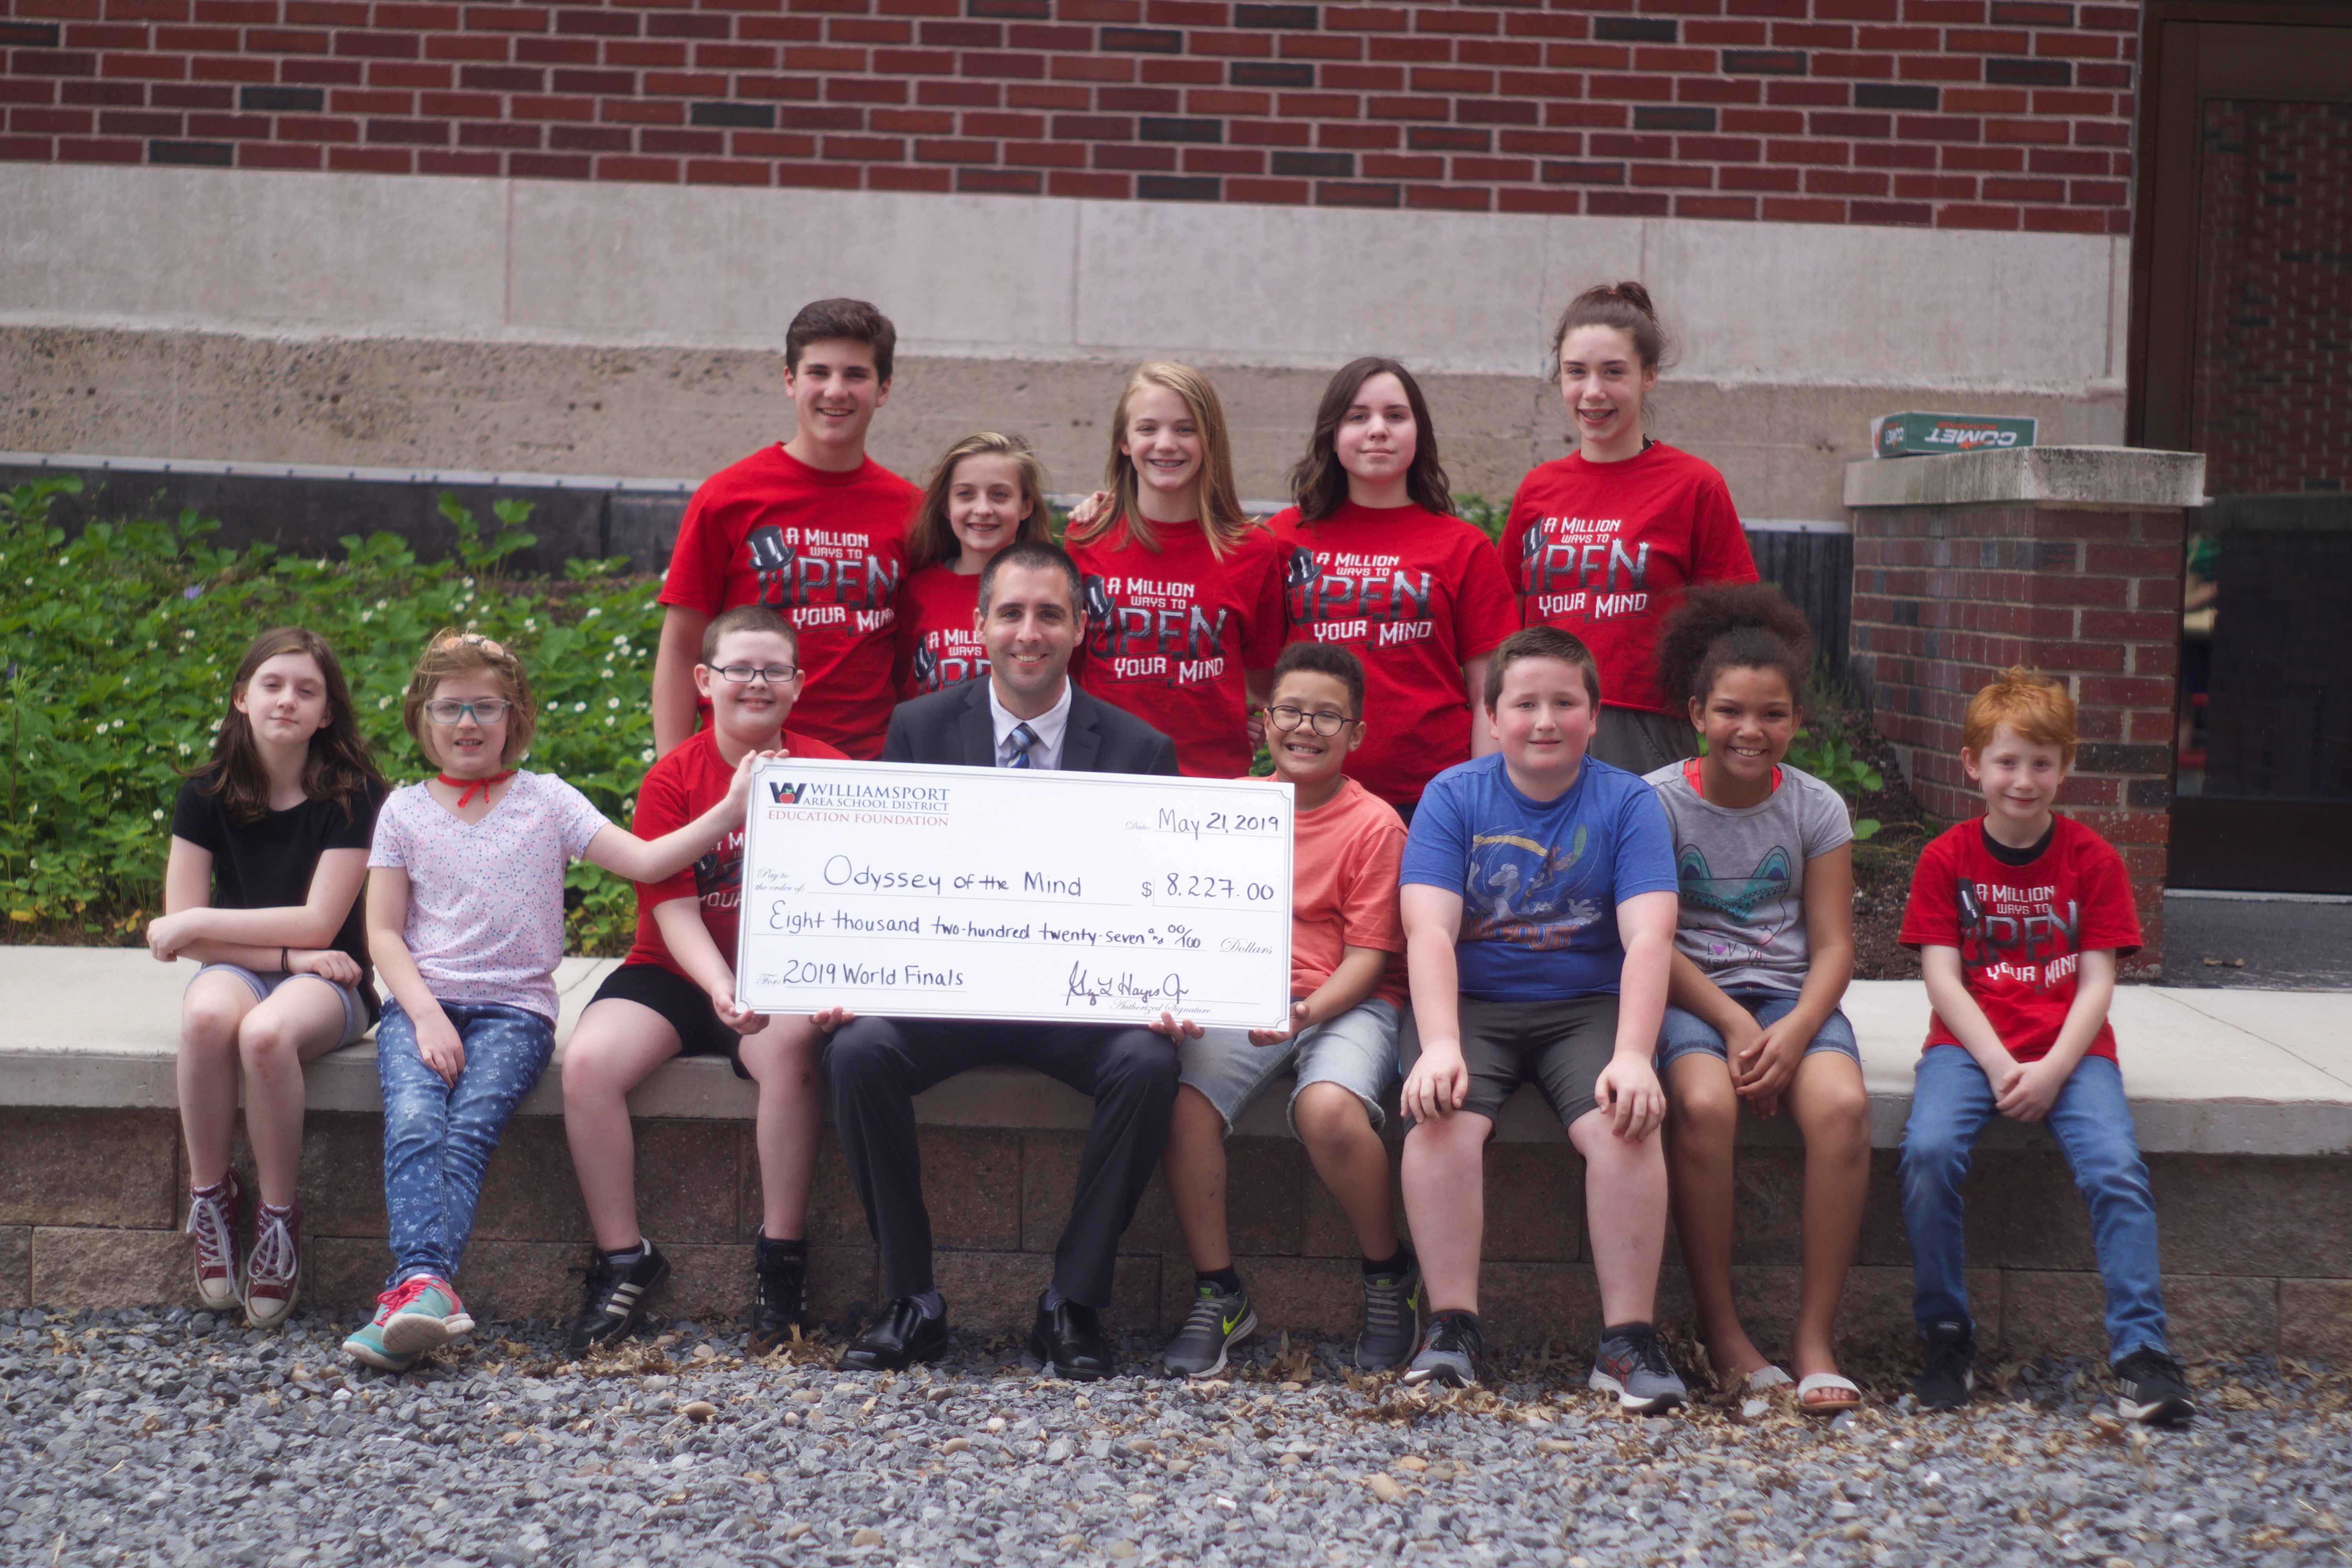 WASDEF Grants $8,227 to 2 OM Teams Headed to World Finals